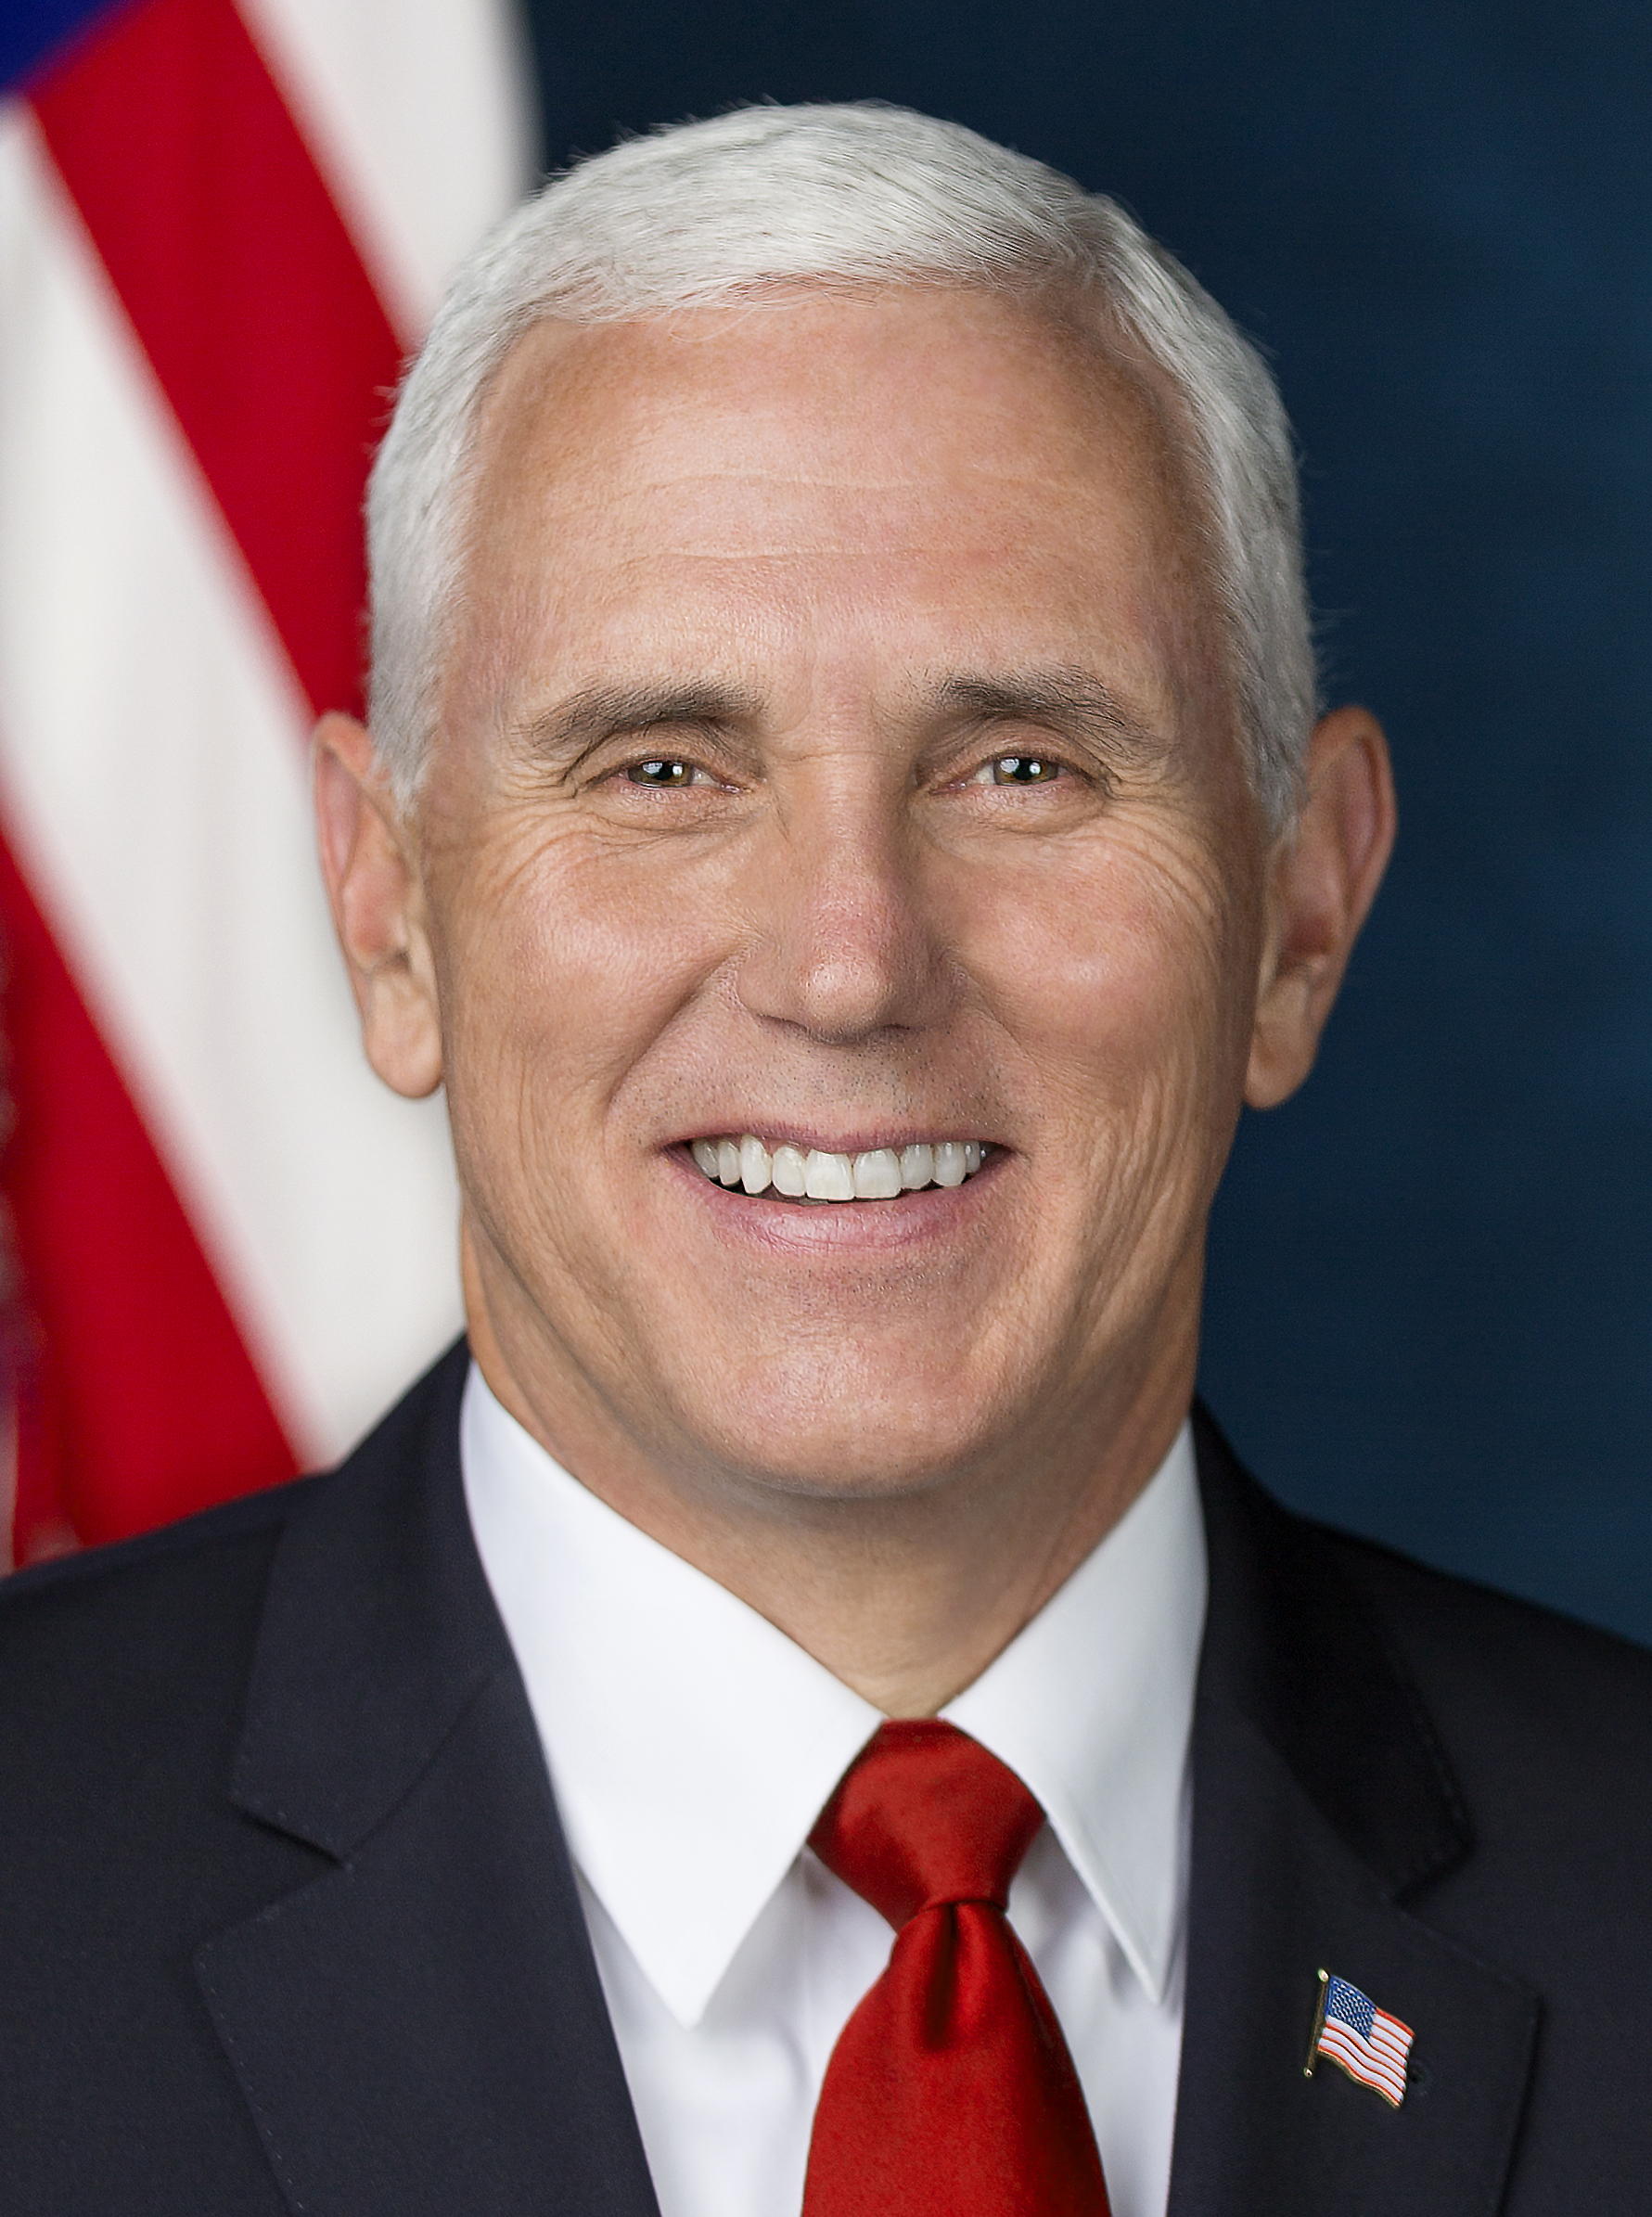 Vice President Of The United States